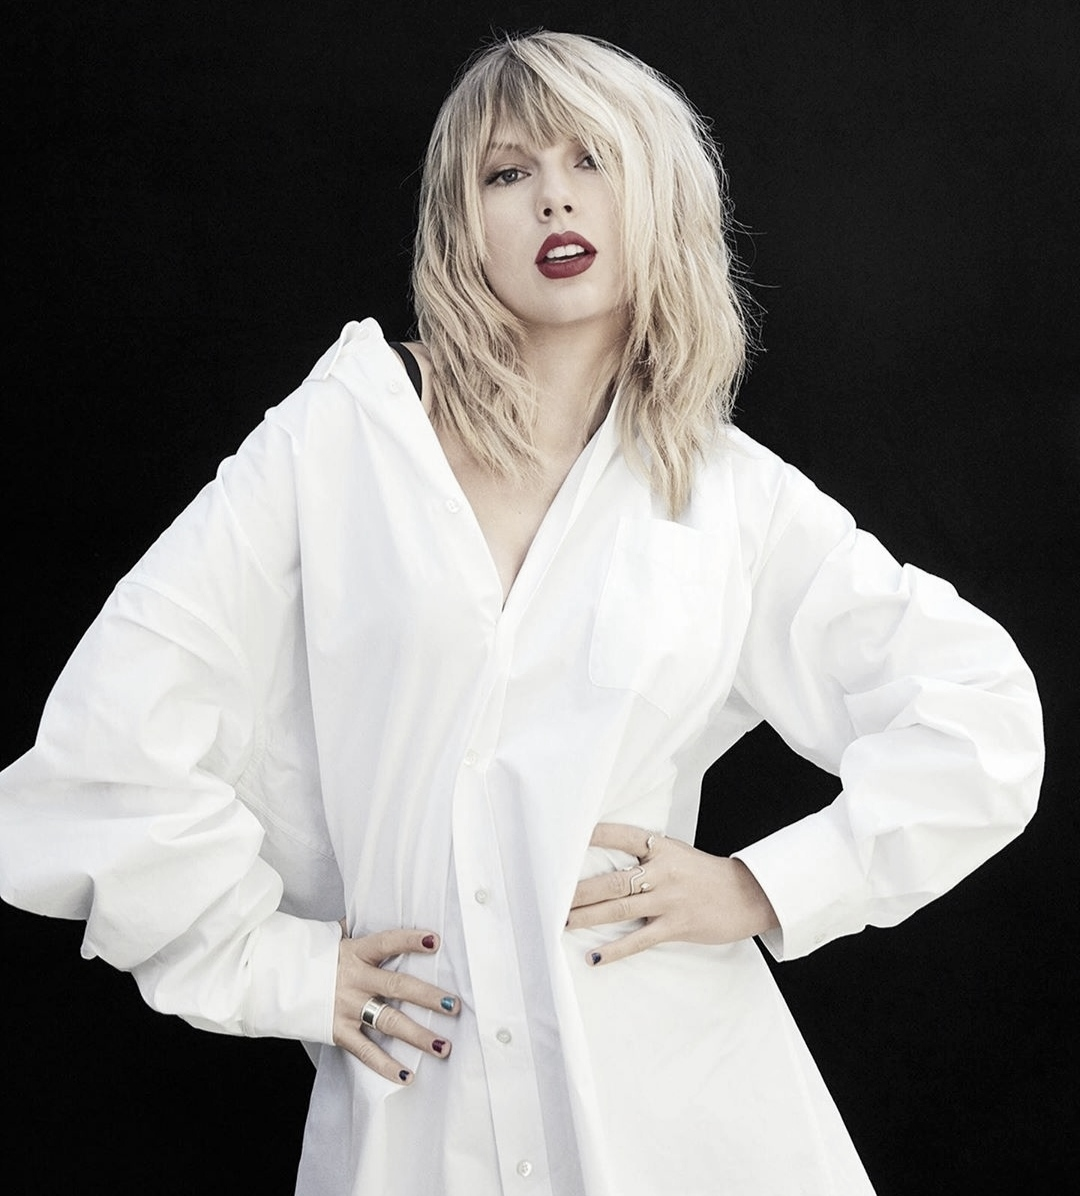 10+ Amazing Taylor swift Photos [ 2020] - Taylor Swift Hd Image Free Download